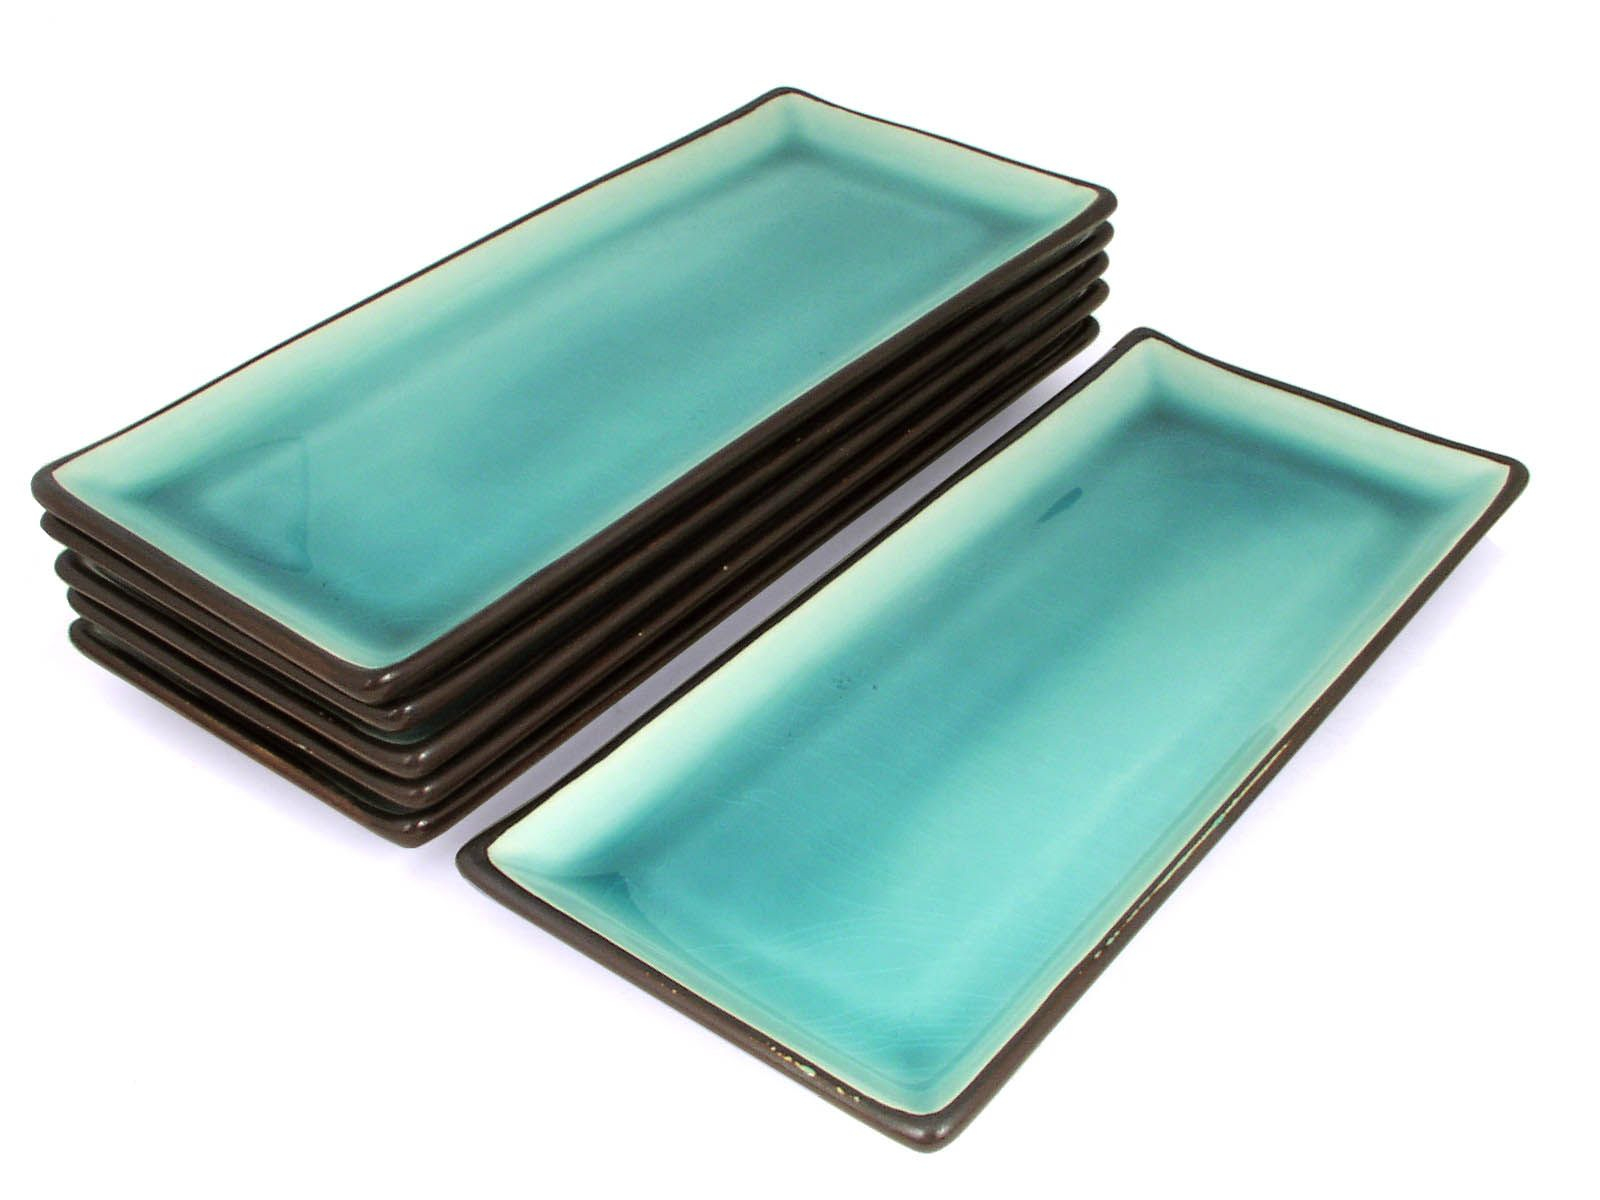 Tropical Teal Rectangular Plate Set Set Of 5 Plates Only)